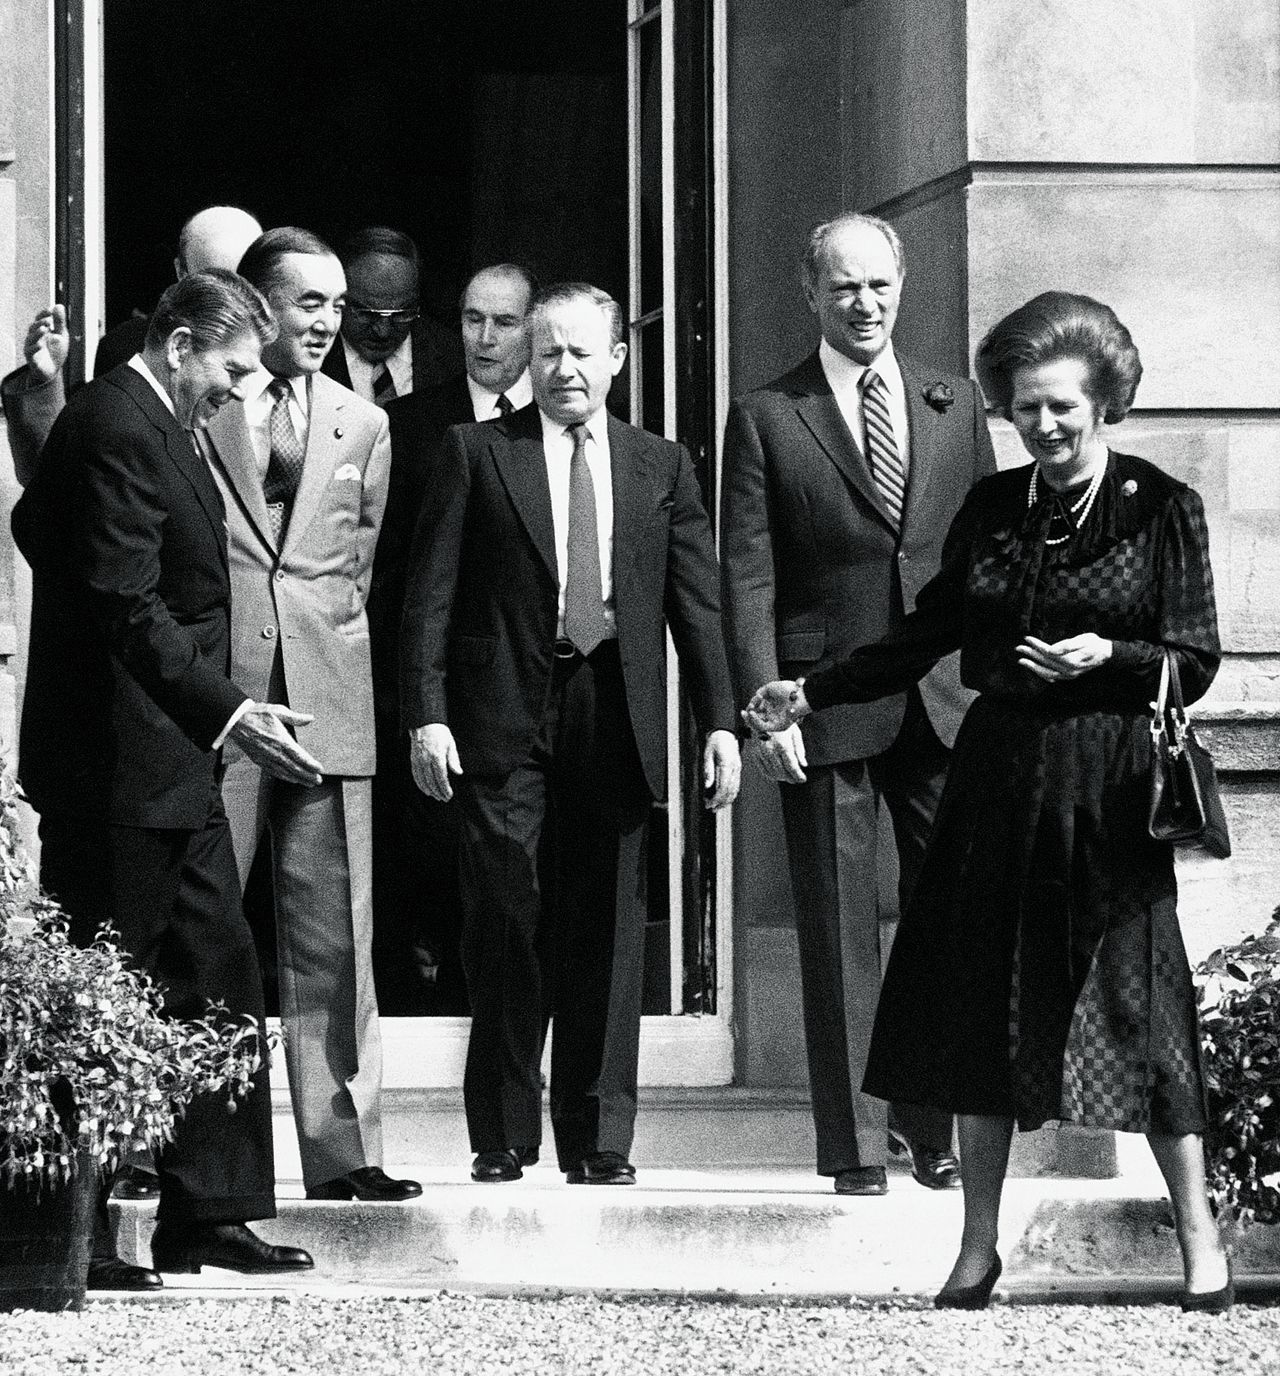 British Prime Minister Margaret Thatcher leads conferees out into the sunshine to pose for photographers before the start of the session of the seven-nation Economic Summit meeting at London?s Lancaster House, June 9, 1984. Included are, front row, left to right: U.S. President Ronald Reagan; Japanese Prime Minister Yasuhiro Nakasone, Common Market Commissioner Gaston Thorn; Canadian Prime Minister Pierre Trudeau. French President Francois Mitterrand is behind Thorn. (AP Photo/Press Association)